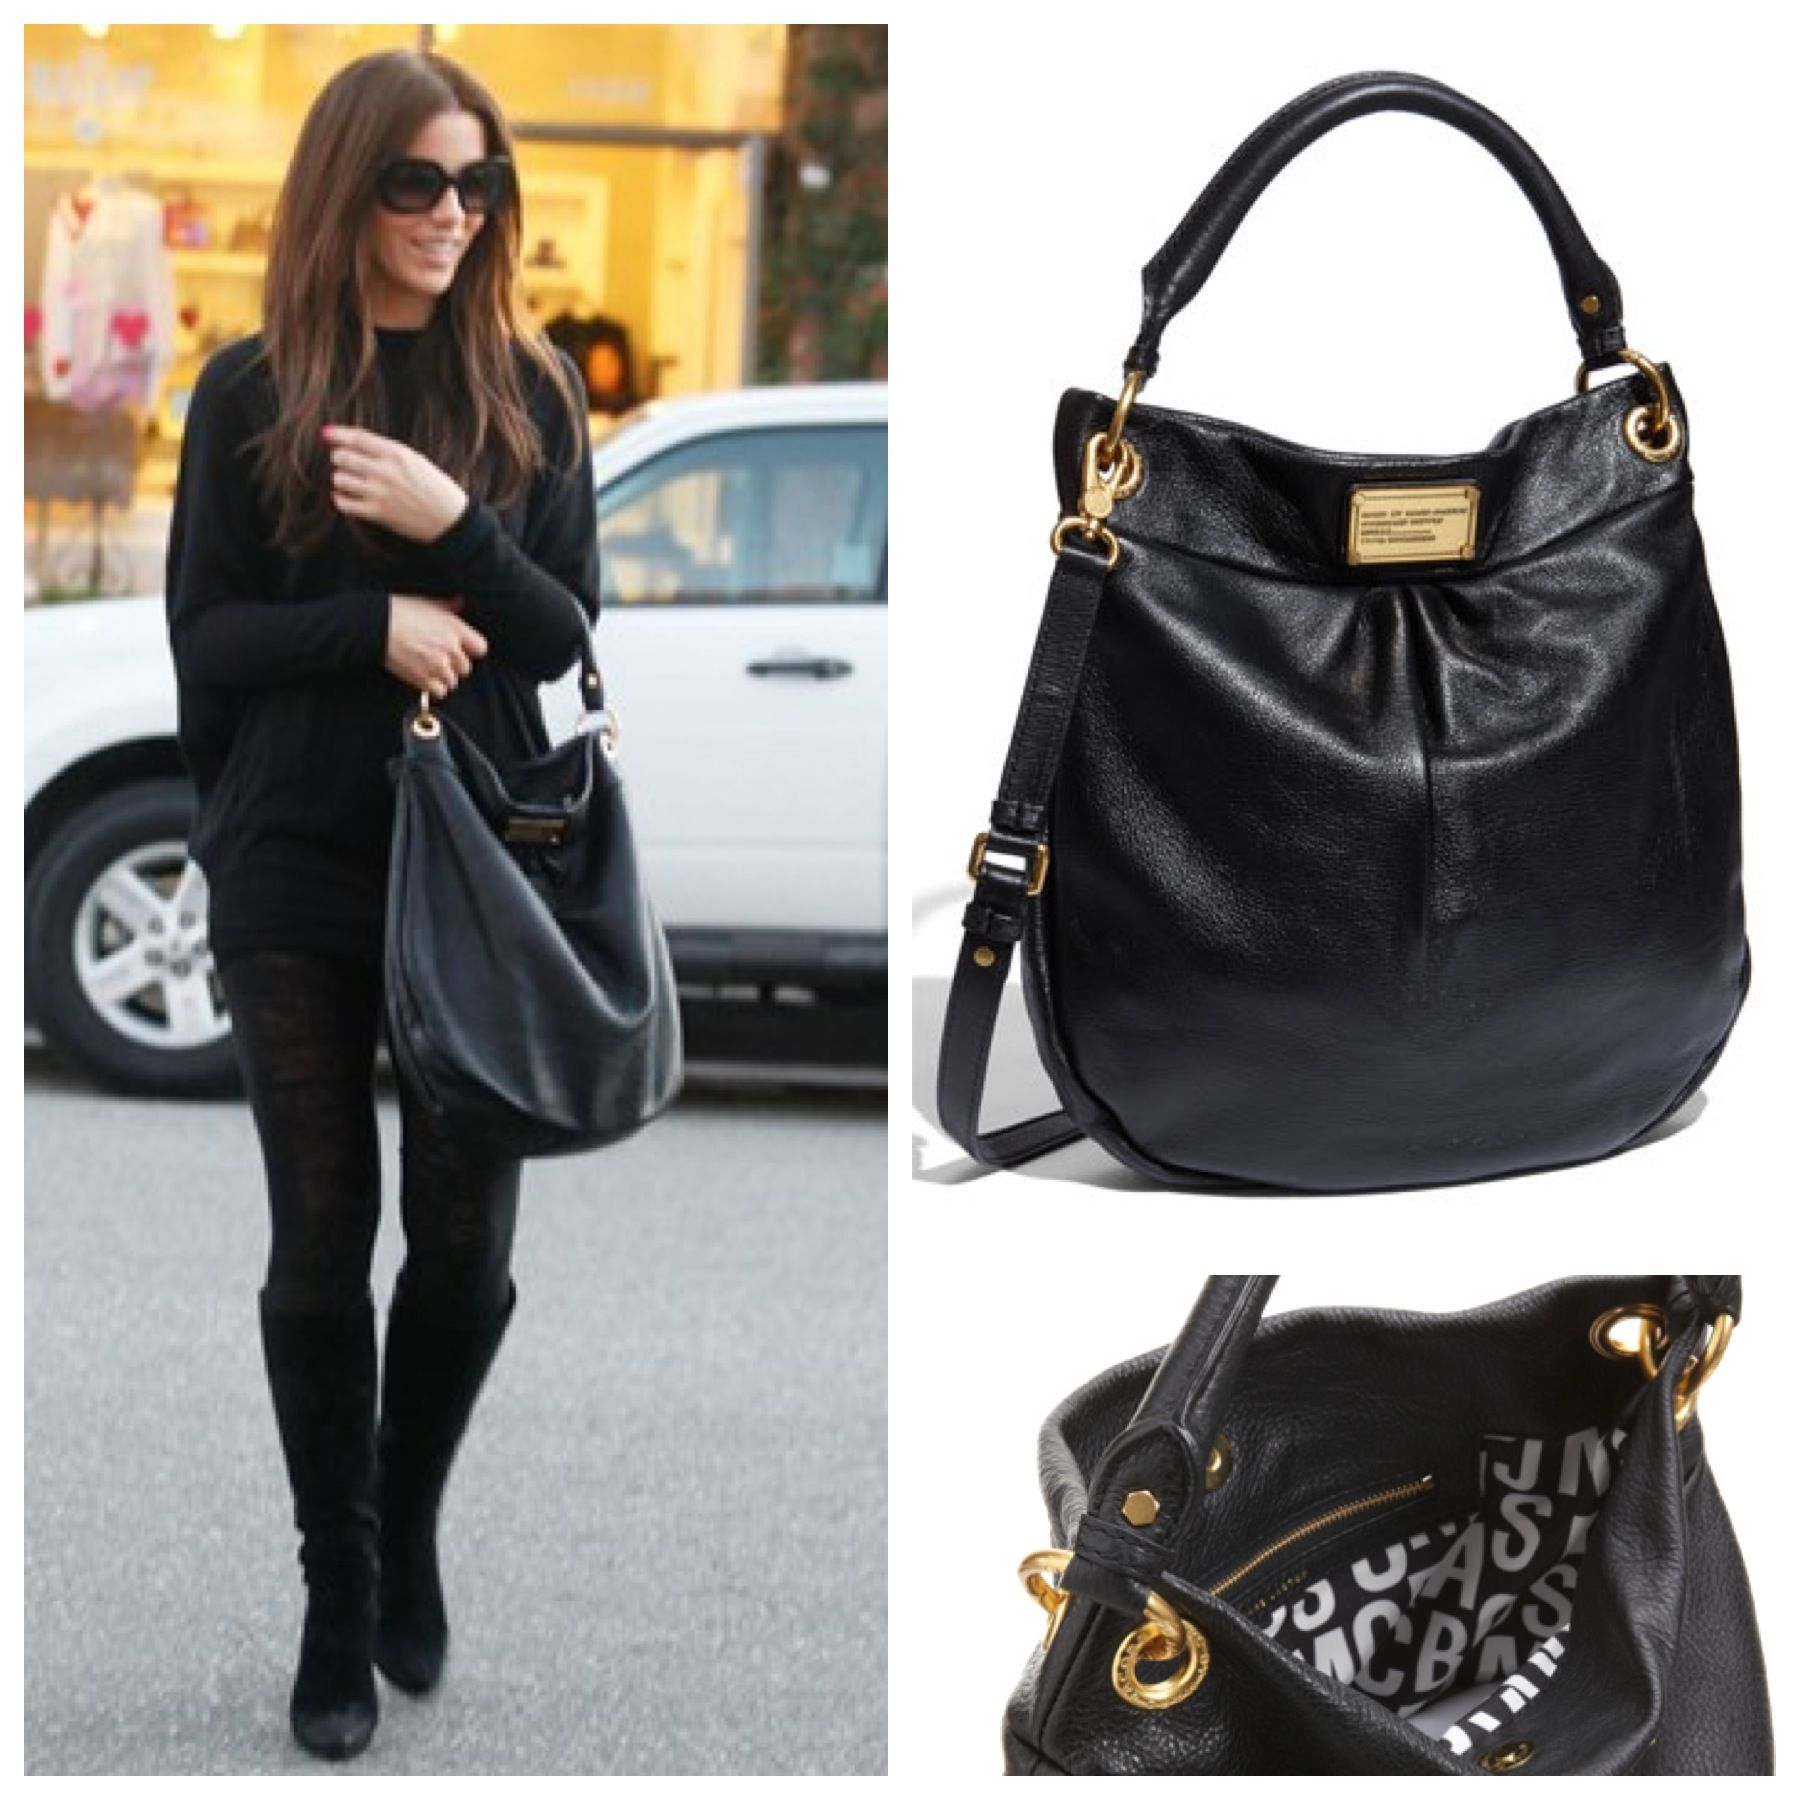 84e694cf63 Snag the bag for less! -- Kate Beckinsale spotted with black Marc Jacobs